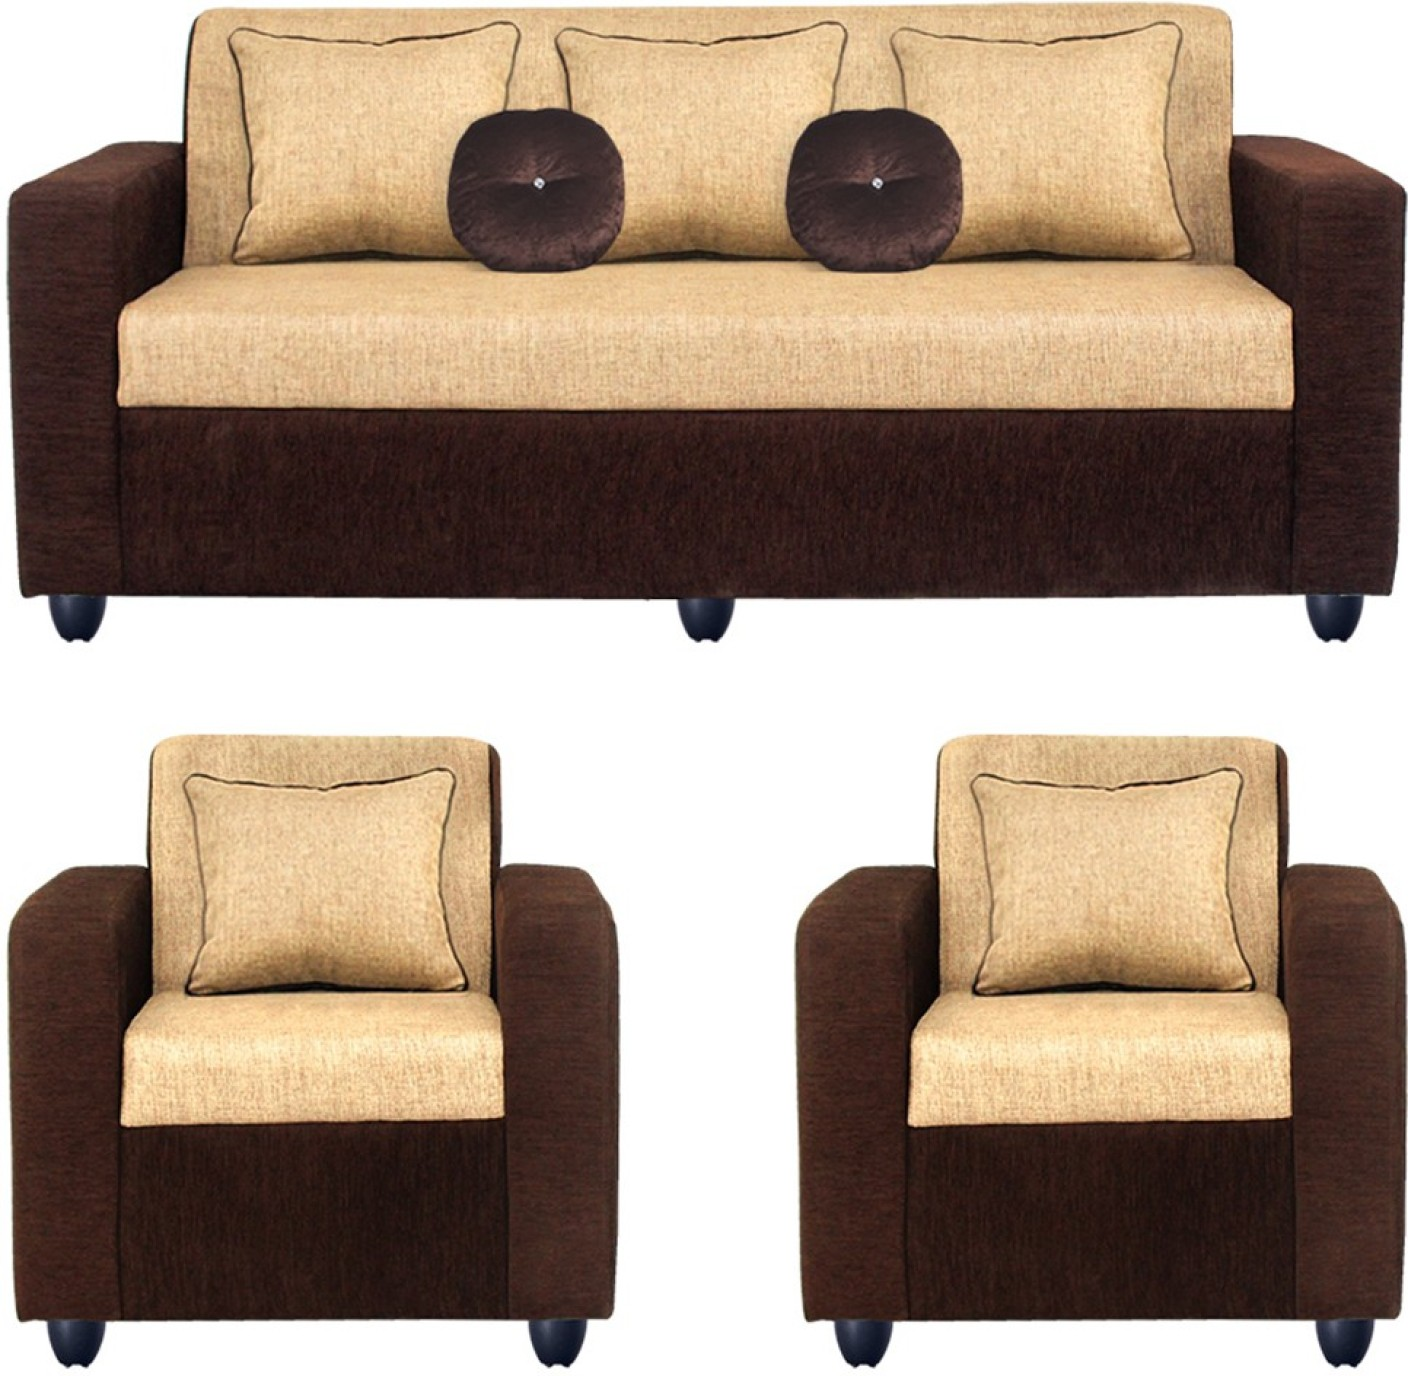 Bharat lifestyle fabric 3 1 1 cream sofa set price in - Living room sets for cheap prices ...